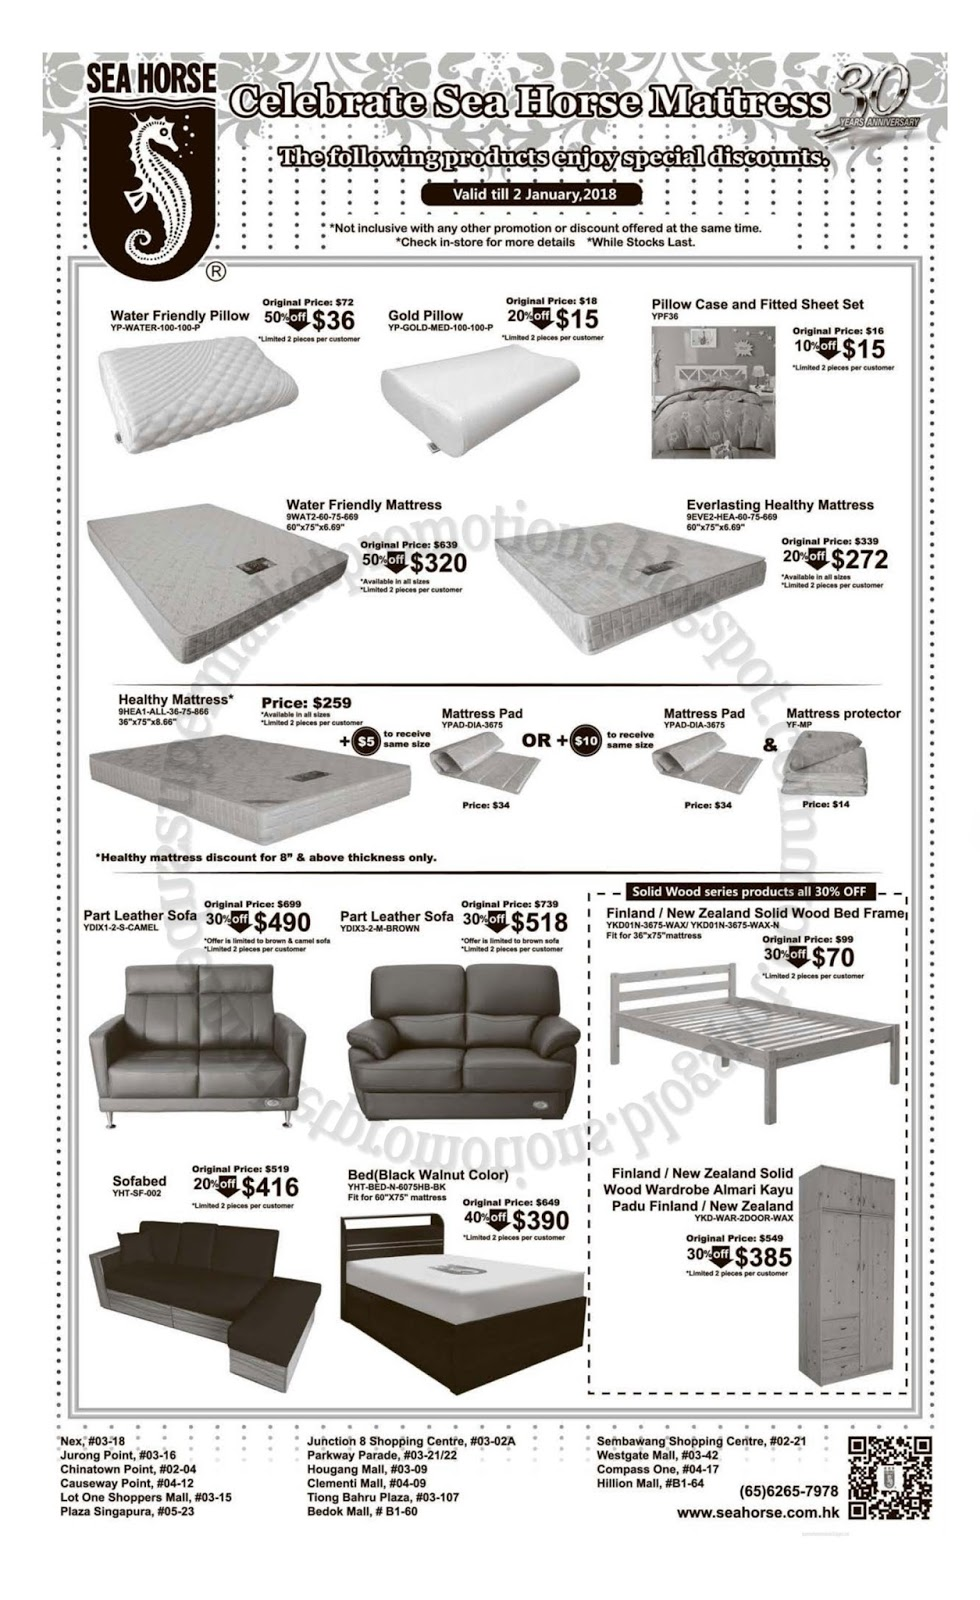 Sea Horse Mattress Promotion 05 December 2017 - 02 January 2018 ...